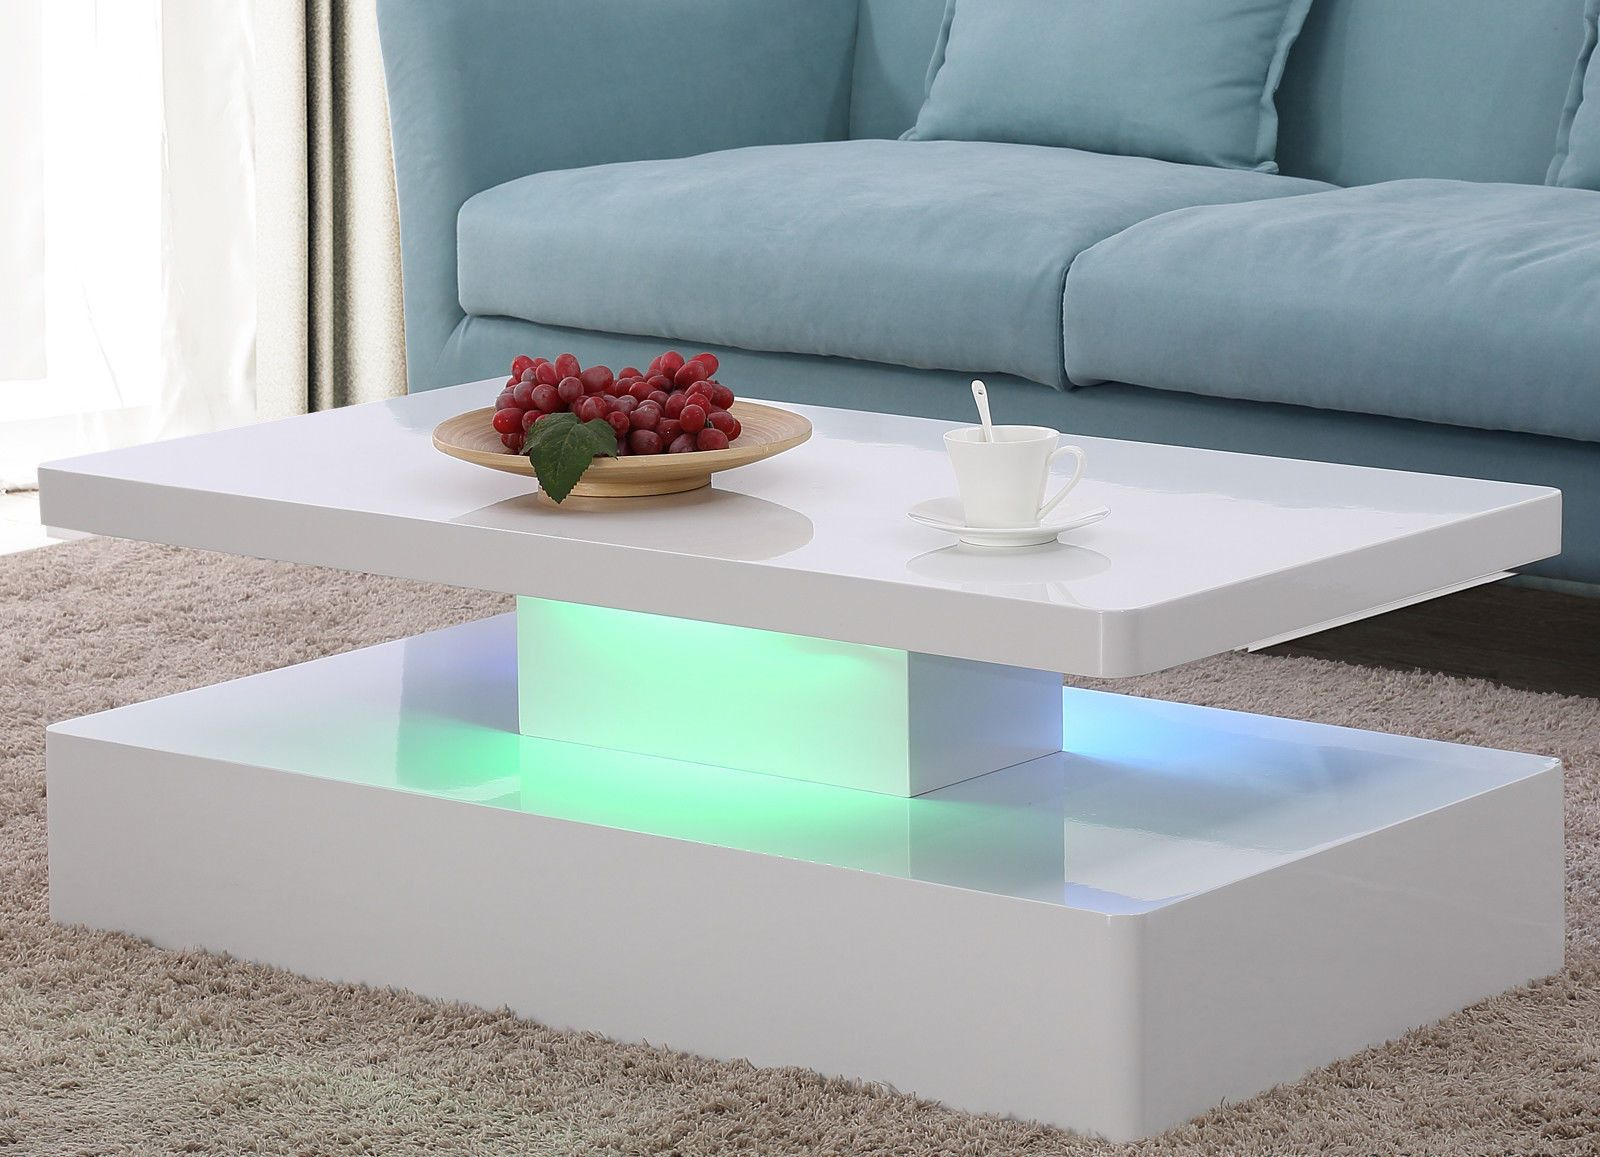 Mary Coffee Table Modern Led Coffee Table Modern Coffee Tables Contemporary Coffee Table [ 1157 x 1600 Pixel ]